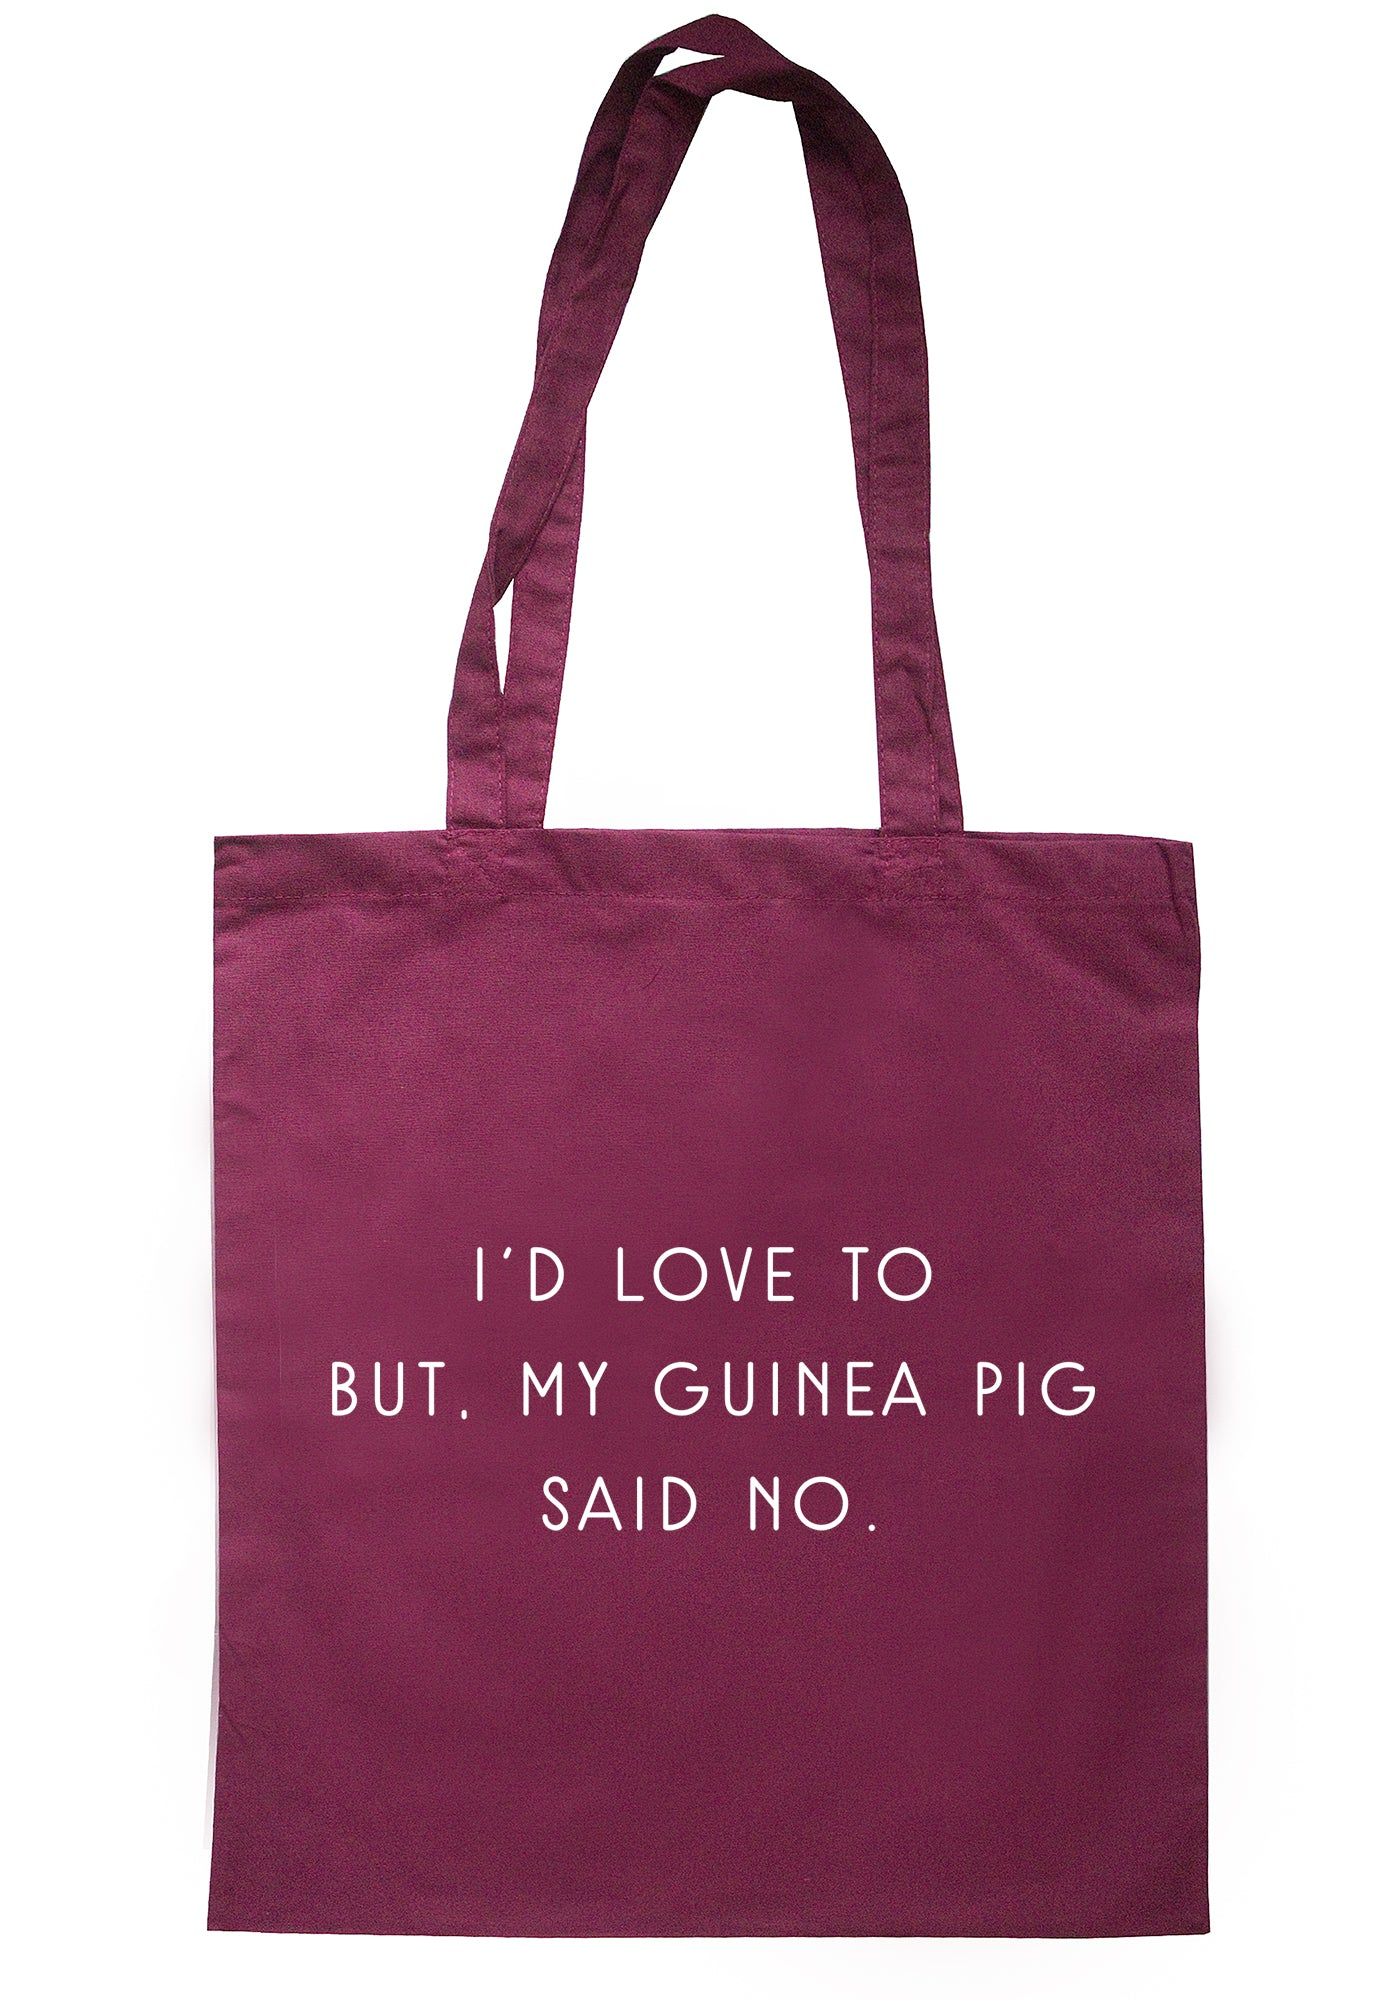 I'd Love To But, My Guinea Pig Said No Tote Bag S1068 - Illustrated Identity Ltd.